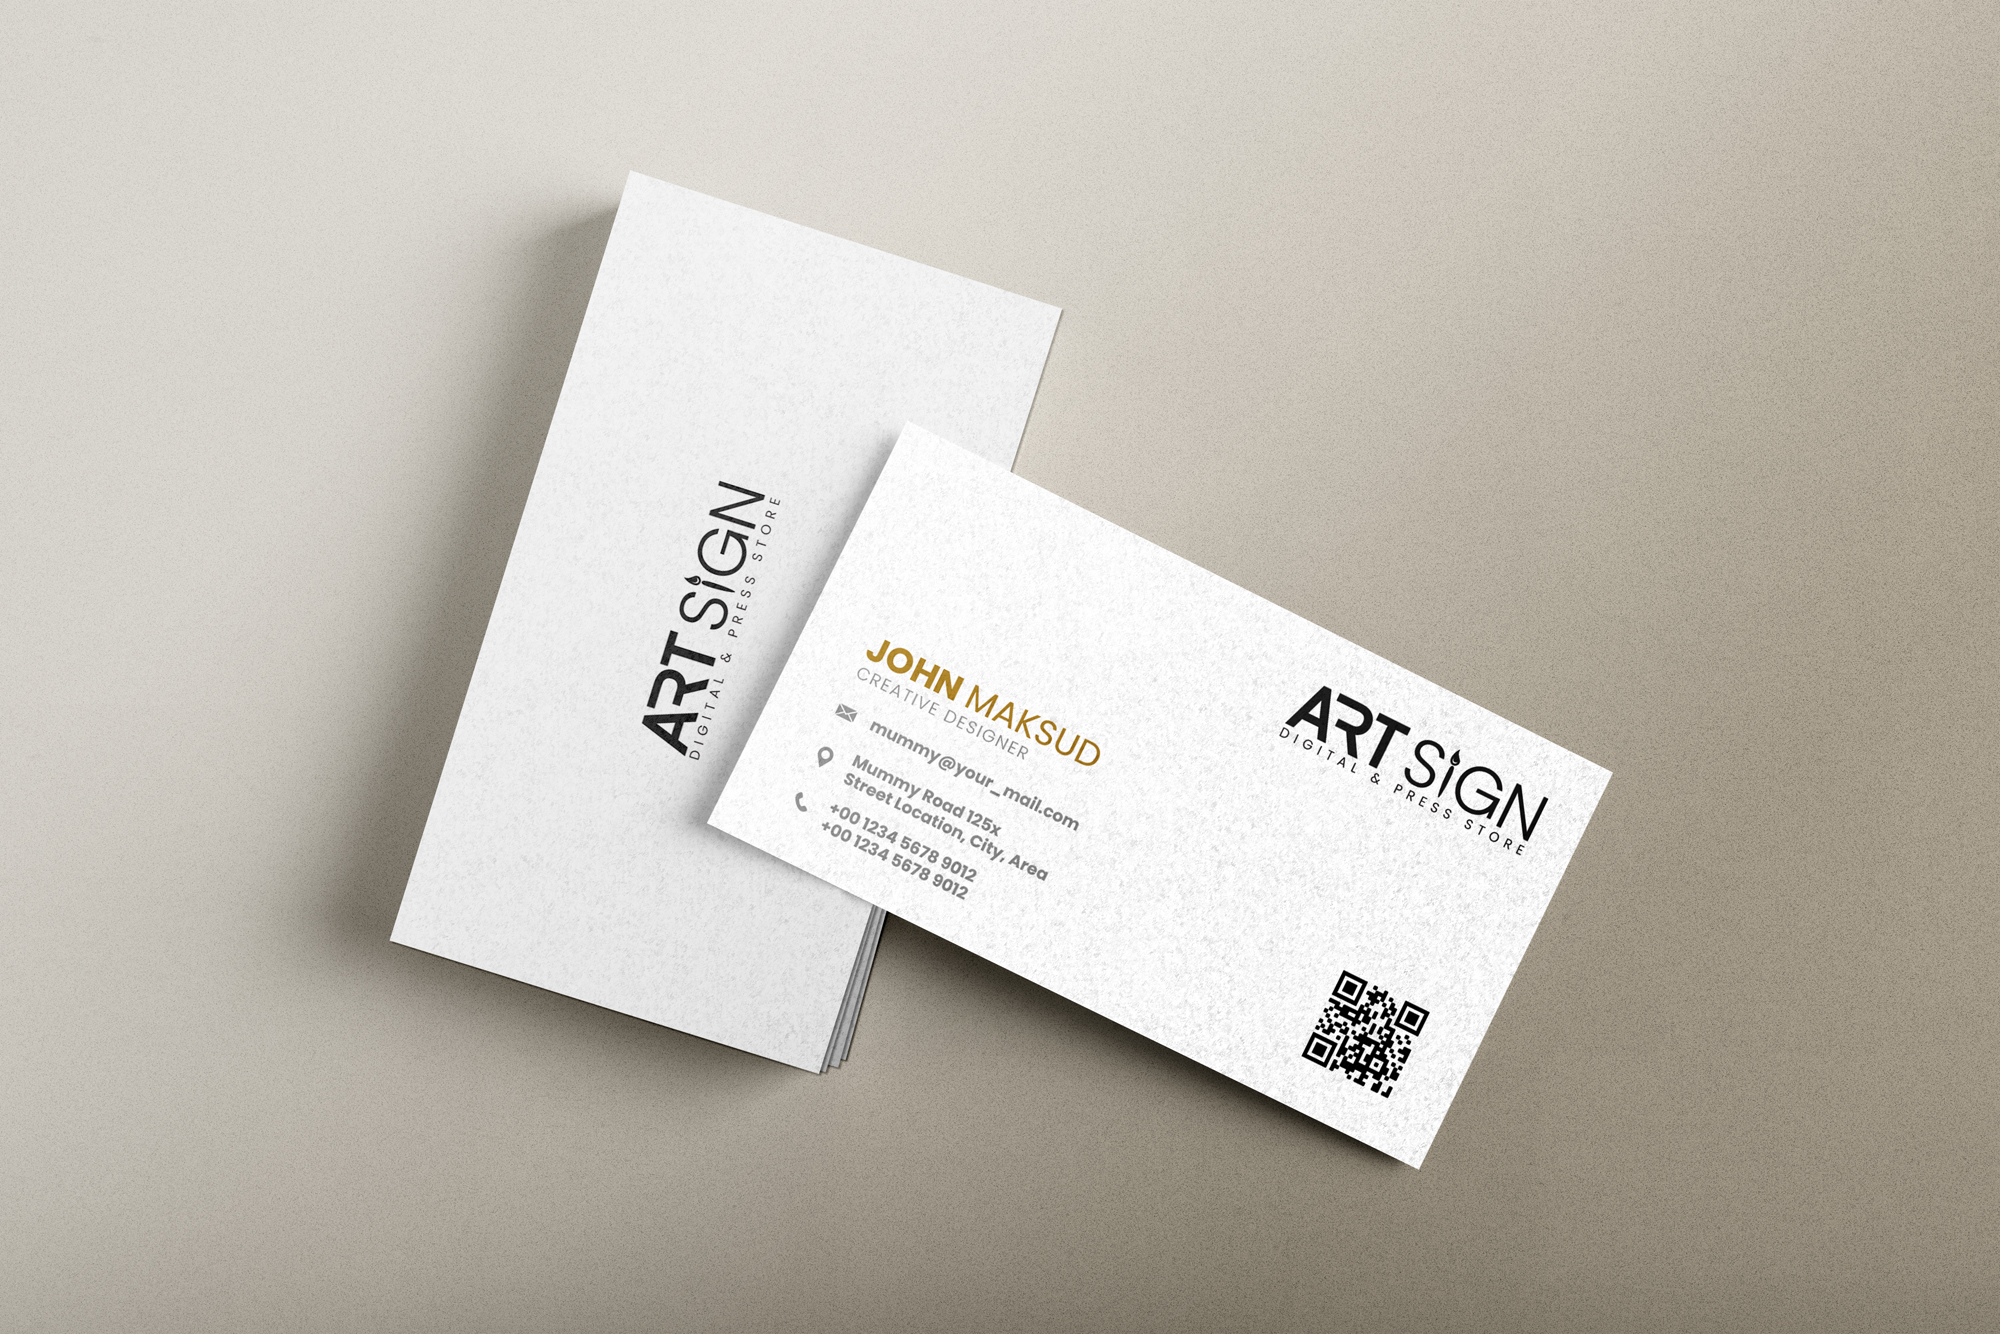 I will design minimalist business card for your business in 6 hours